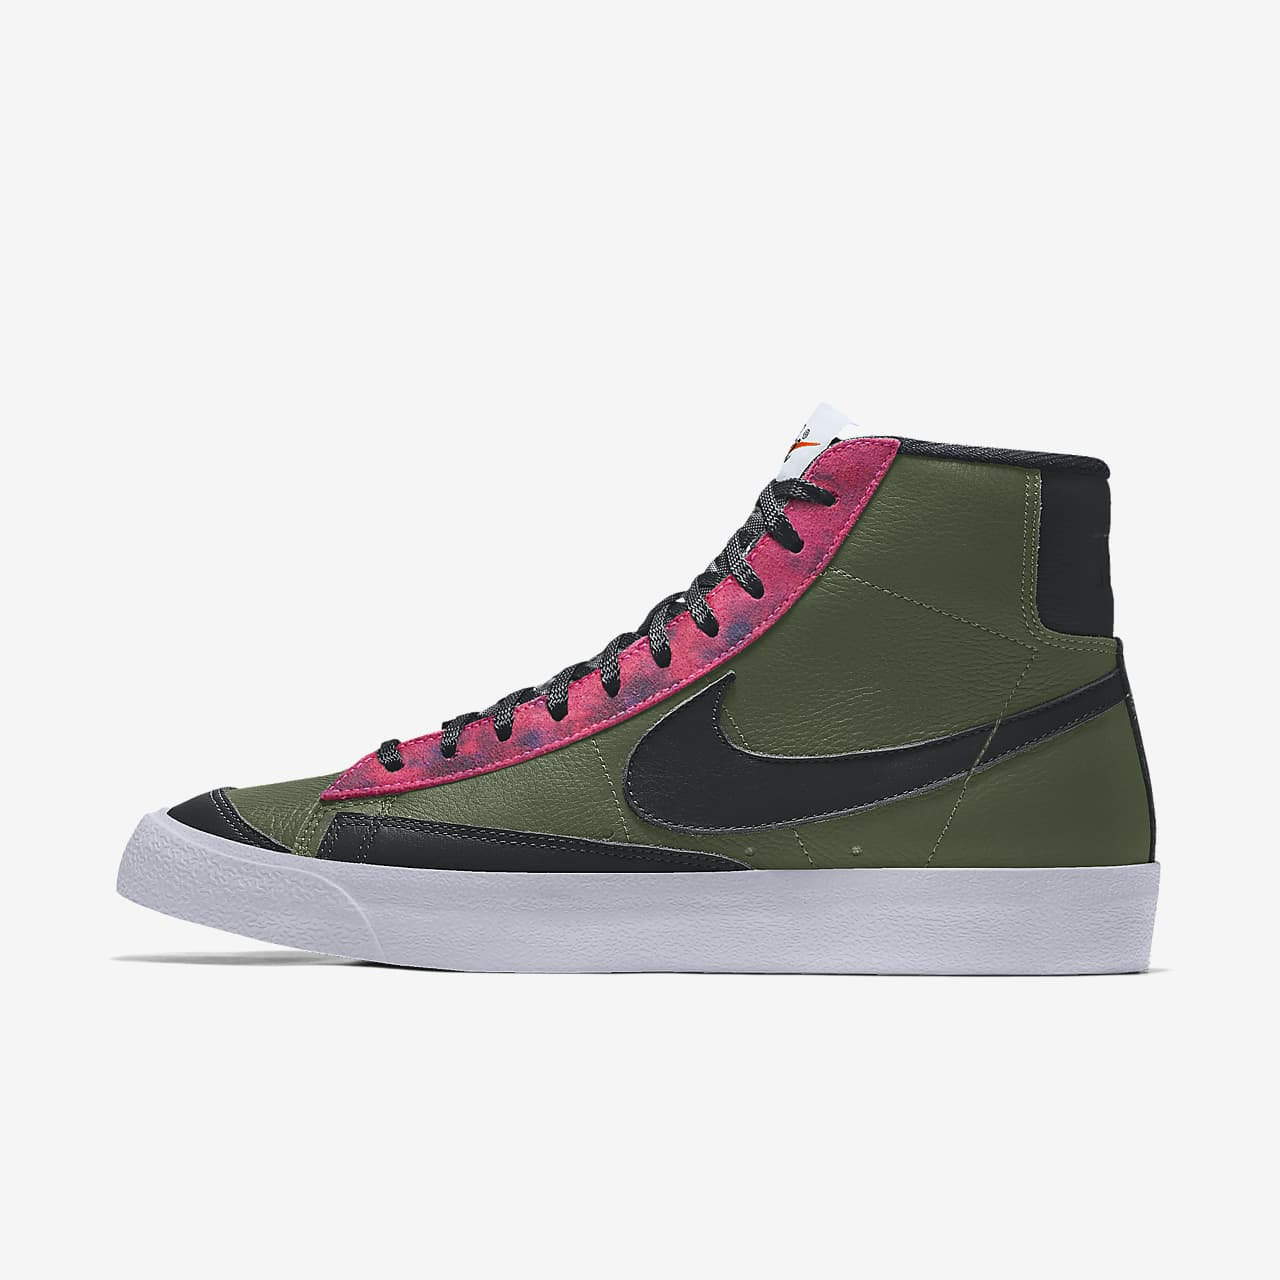 Nike Blazer Mid '77 By You personalisierbarer Schuh